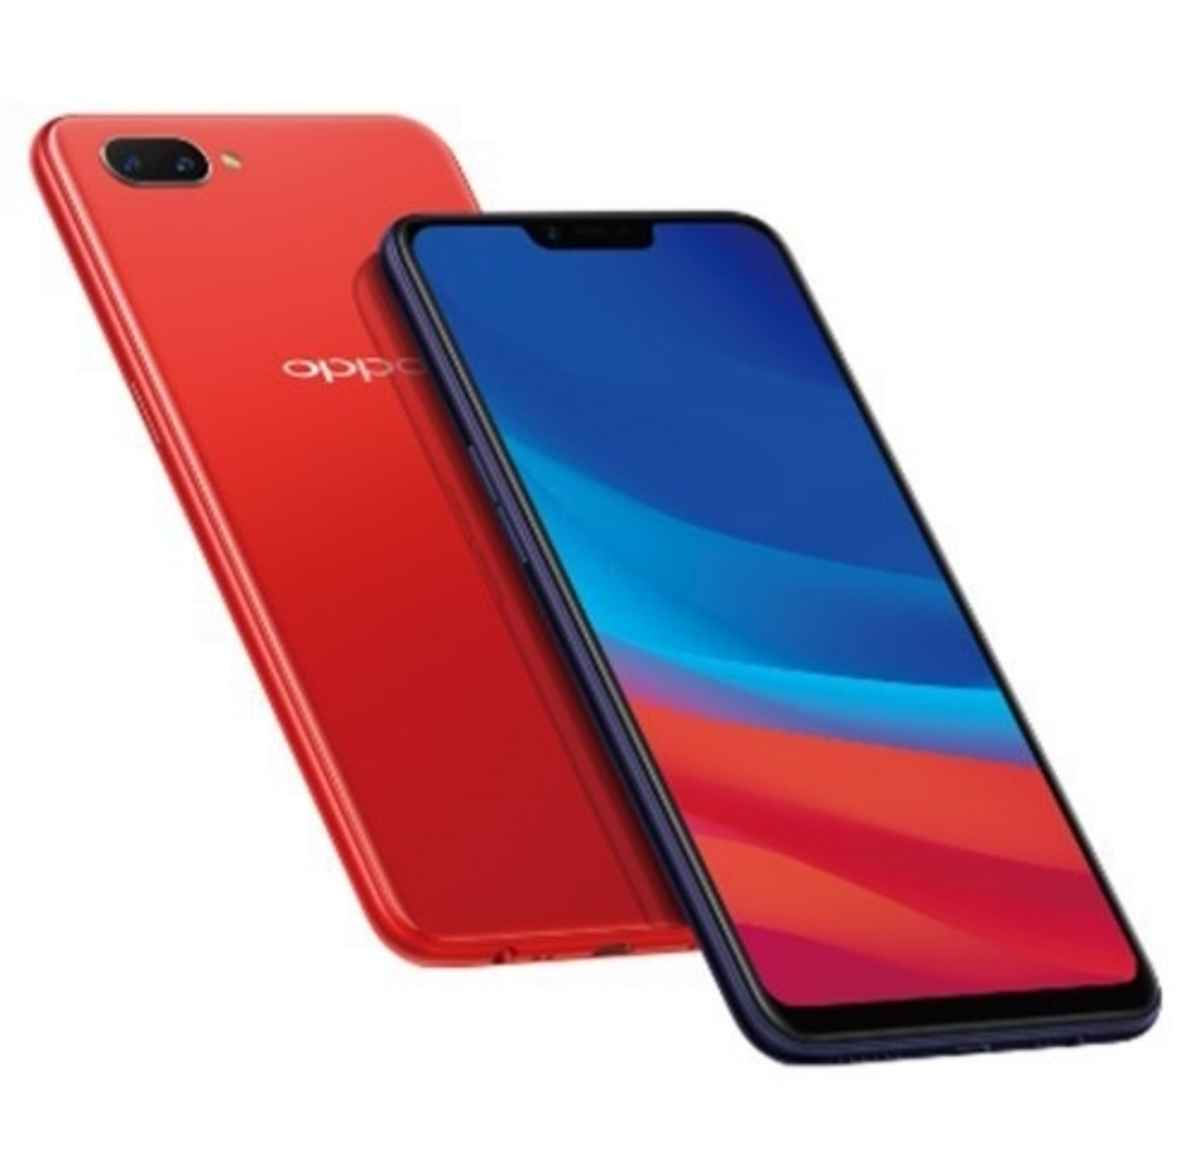 Oppo A12e, Oppo A12e price, Oppo A12e specs and price in Nigeria, Oppo A12e specs, How much is Oppo A12e in Nigeria, Oppo A12e price in Nigeria, Price of Oppo A12e in Nigeria, Oppo A12e in Nigeria